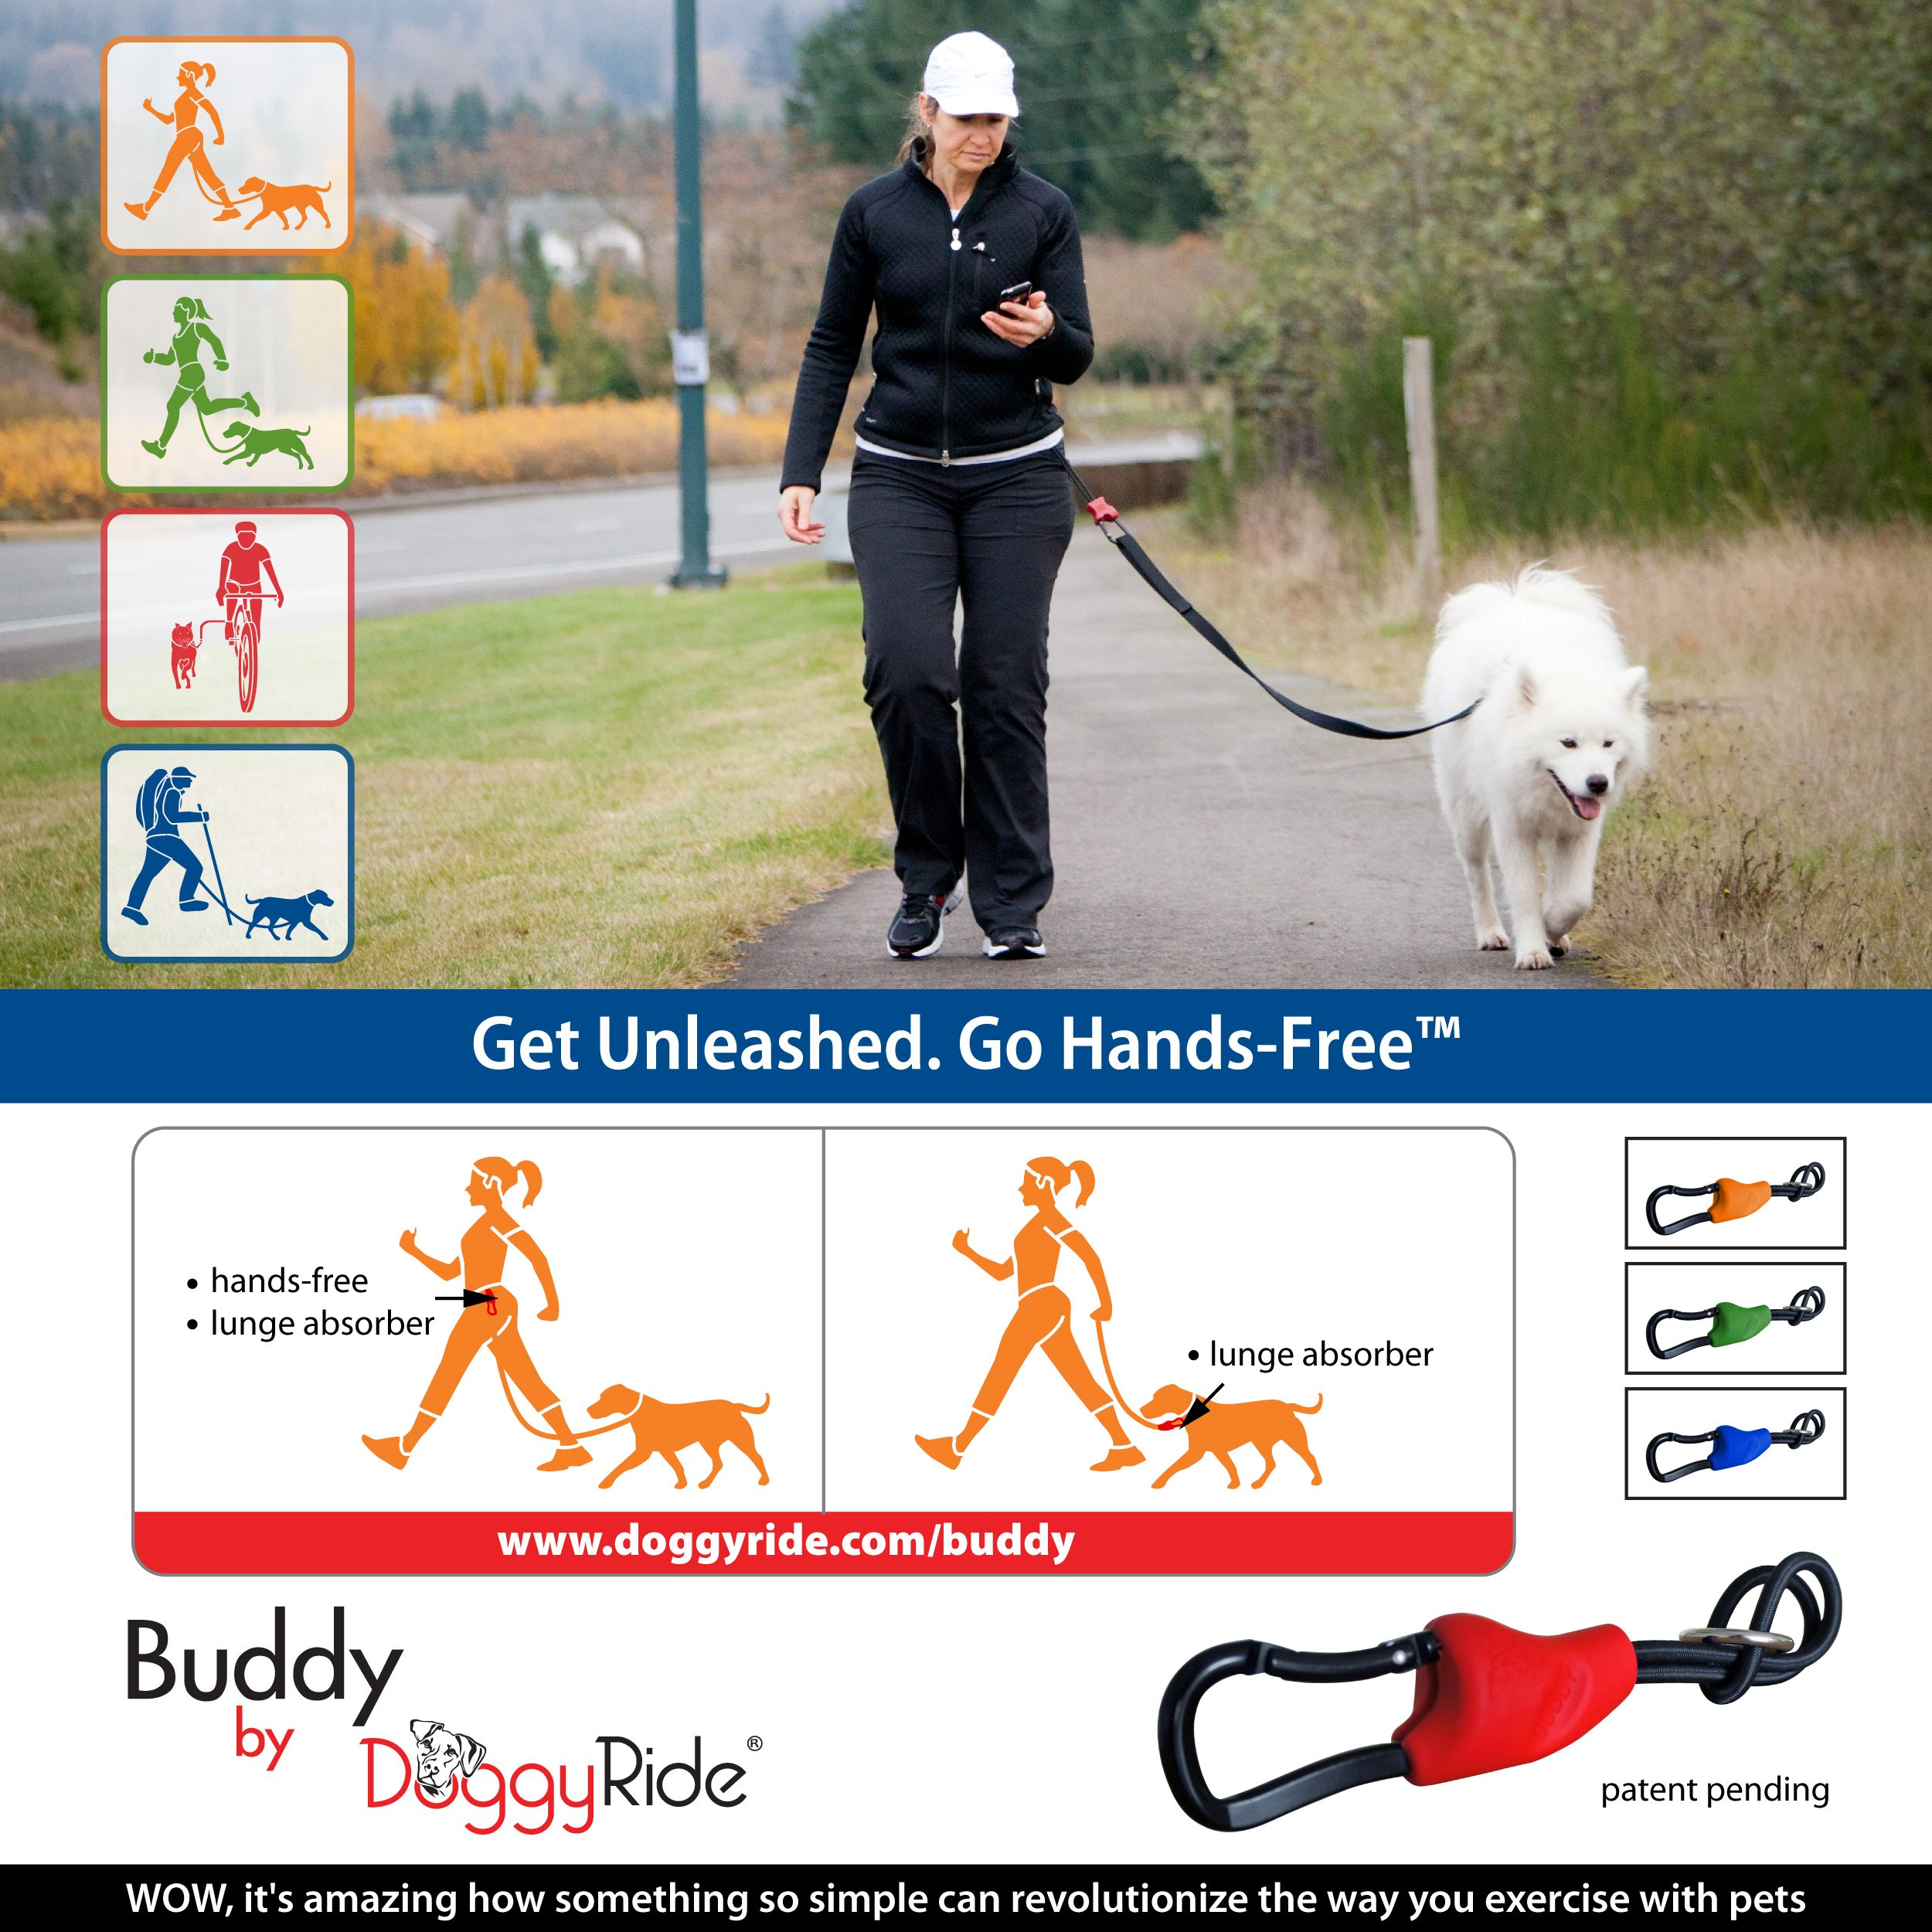 Get your buddy multiactivity dog leash connector hands